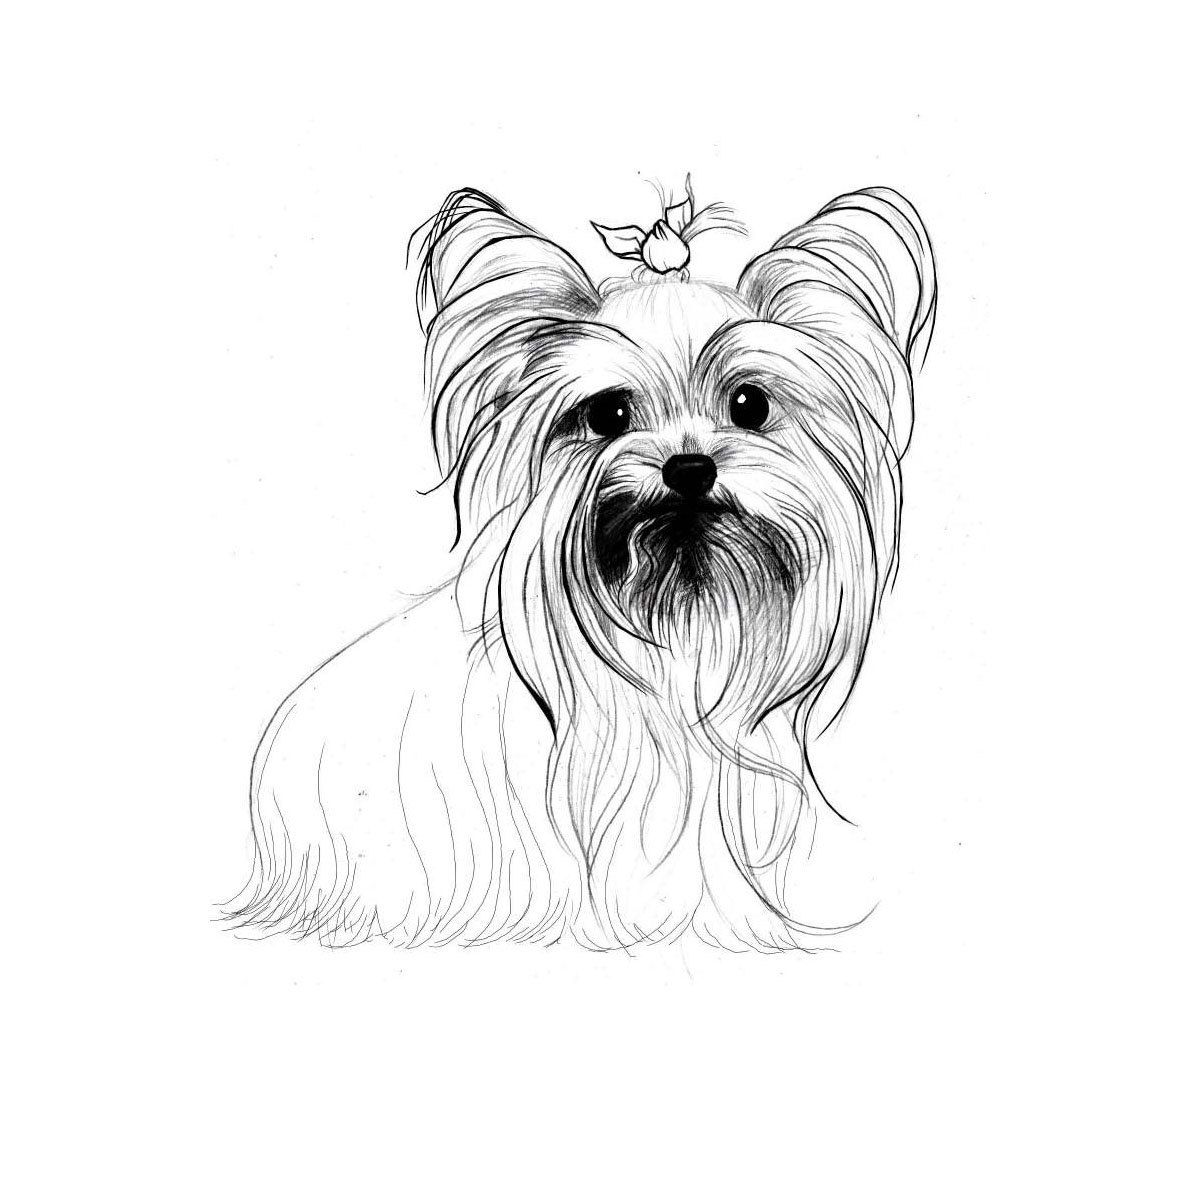 Yorkshire Terrier Coloring Pages Dog Breeds Picture Sketch Coloring Page Yorkie Yorkshire Terrier Dog Breeds Pictures